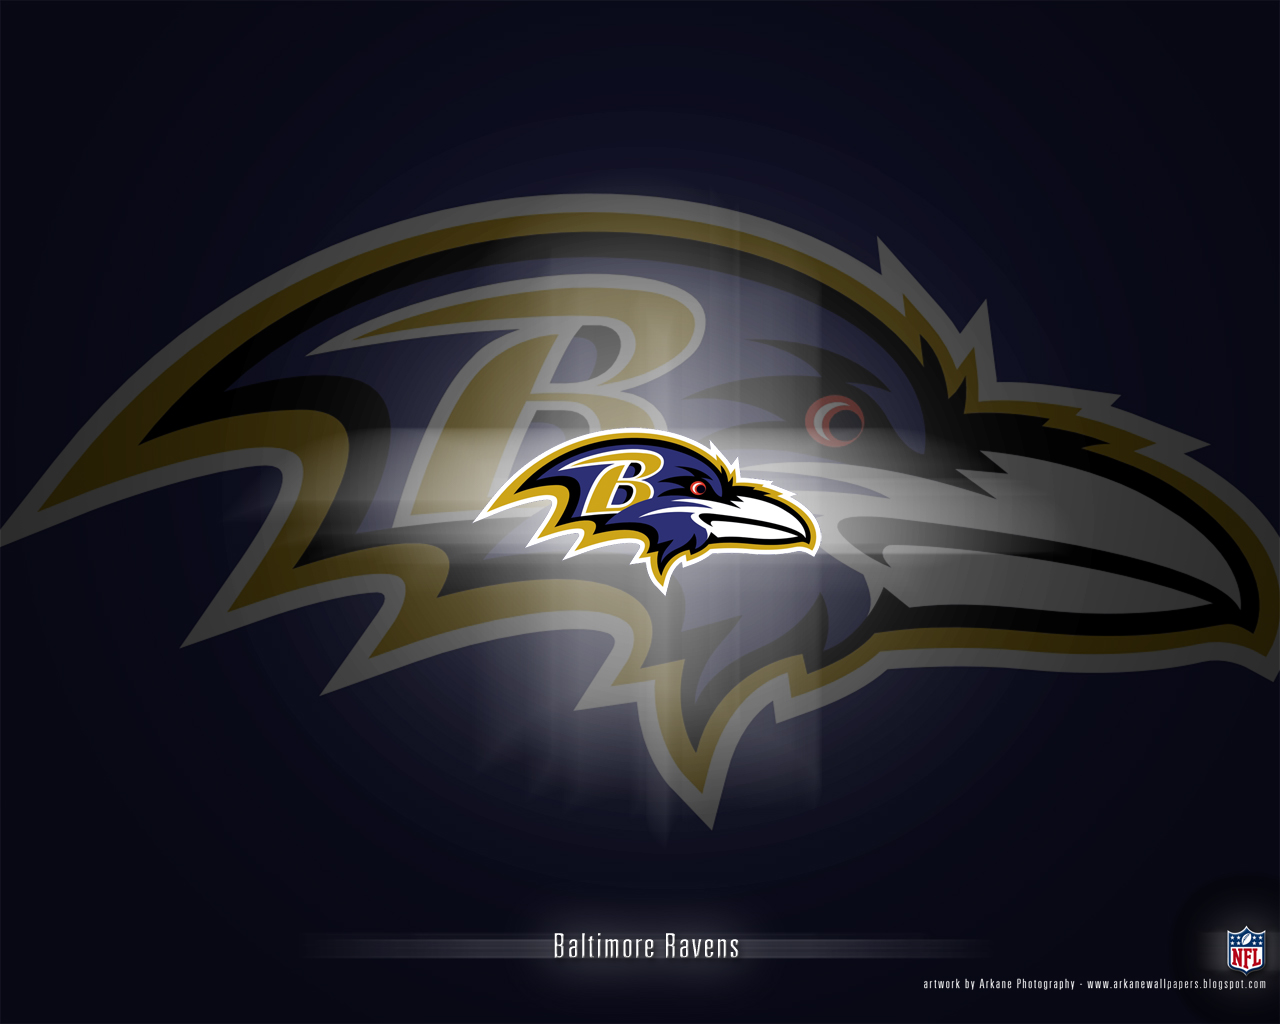 Baltimore Ravens Wallpaper Baltimore Ravens Wallpaper 1280x1024